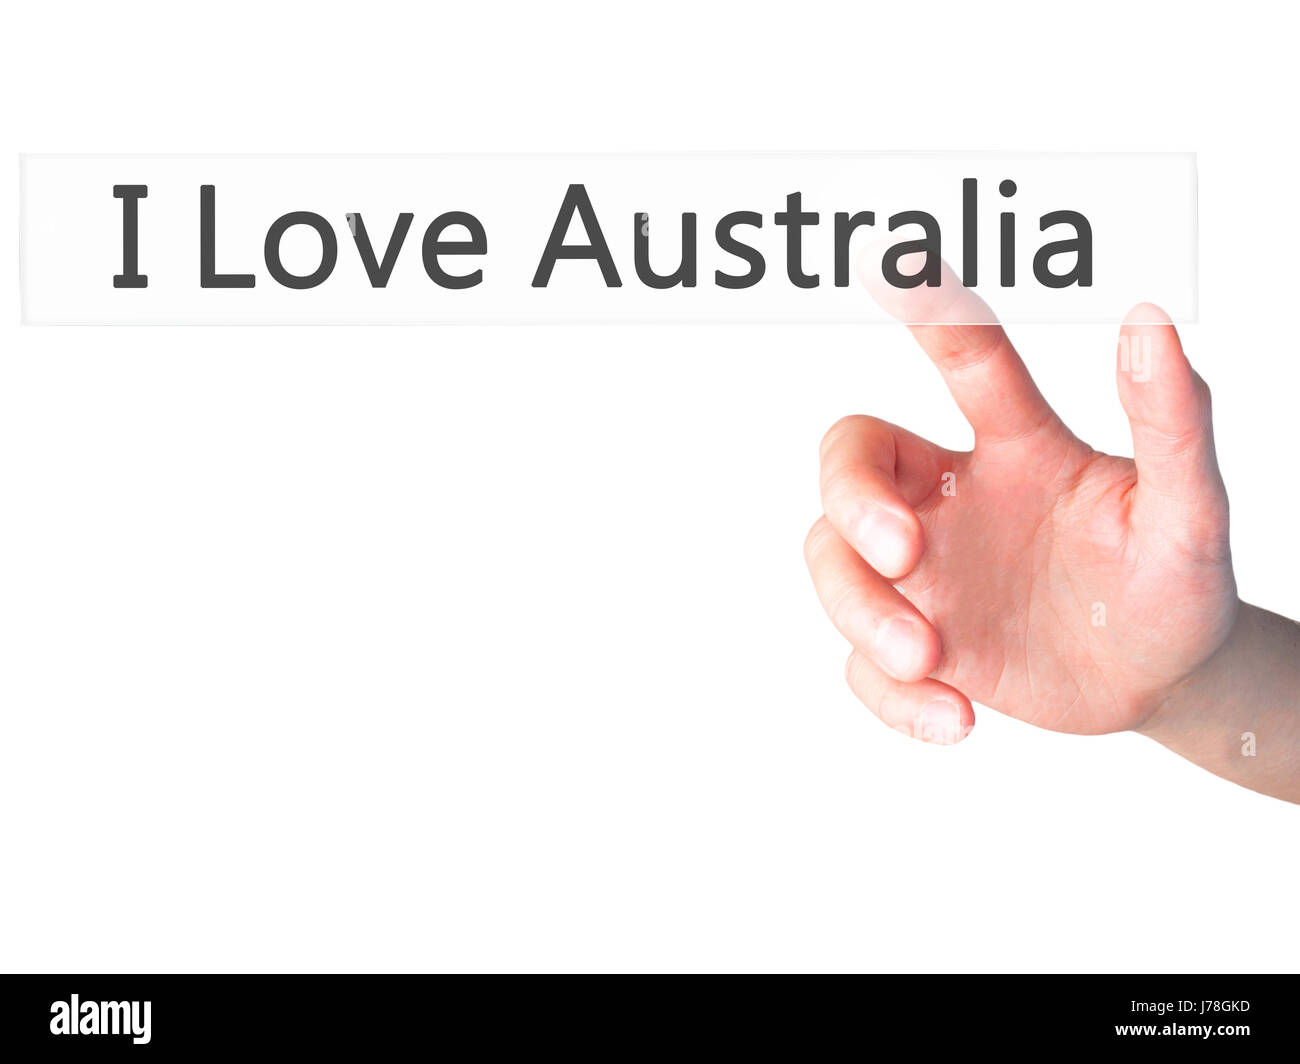 I Love Australia - Hand pressing a button on blurred background concept . Business, technology, internet concept. - Stock Image